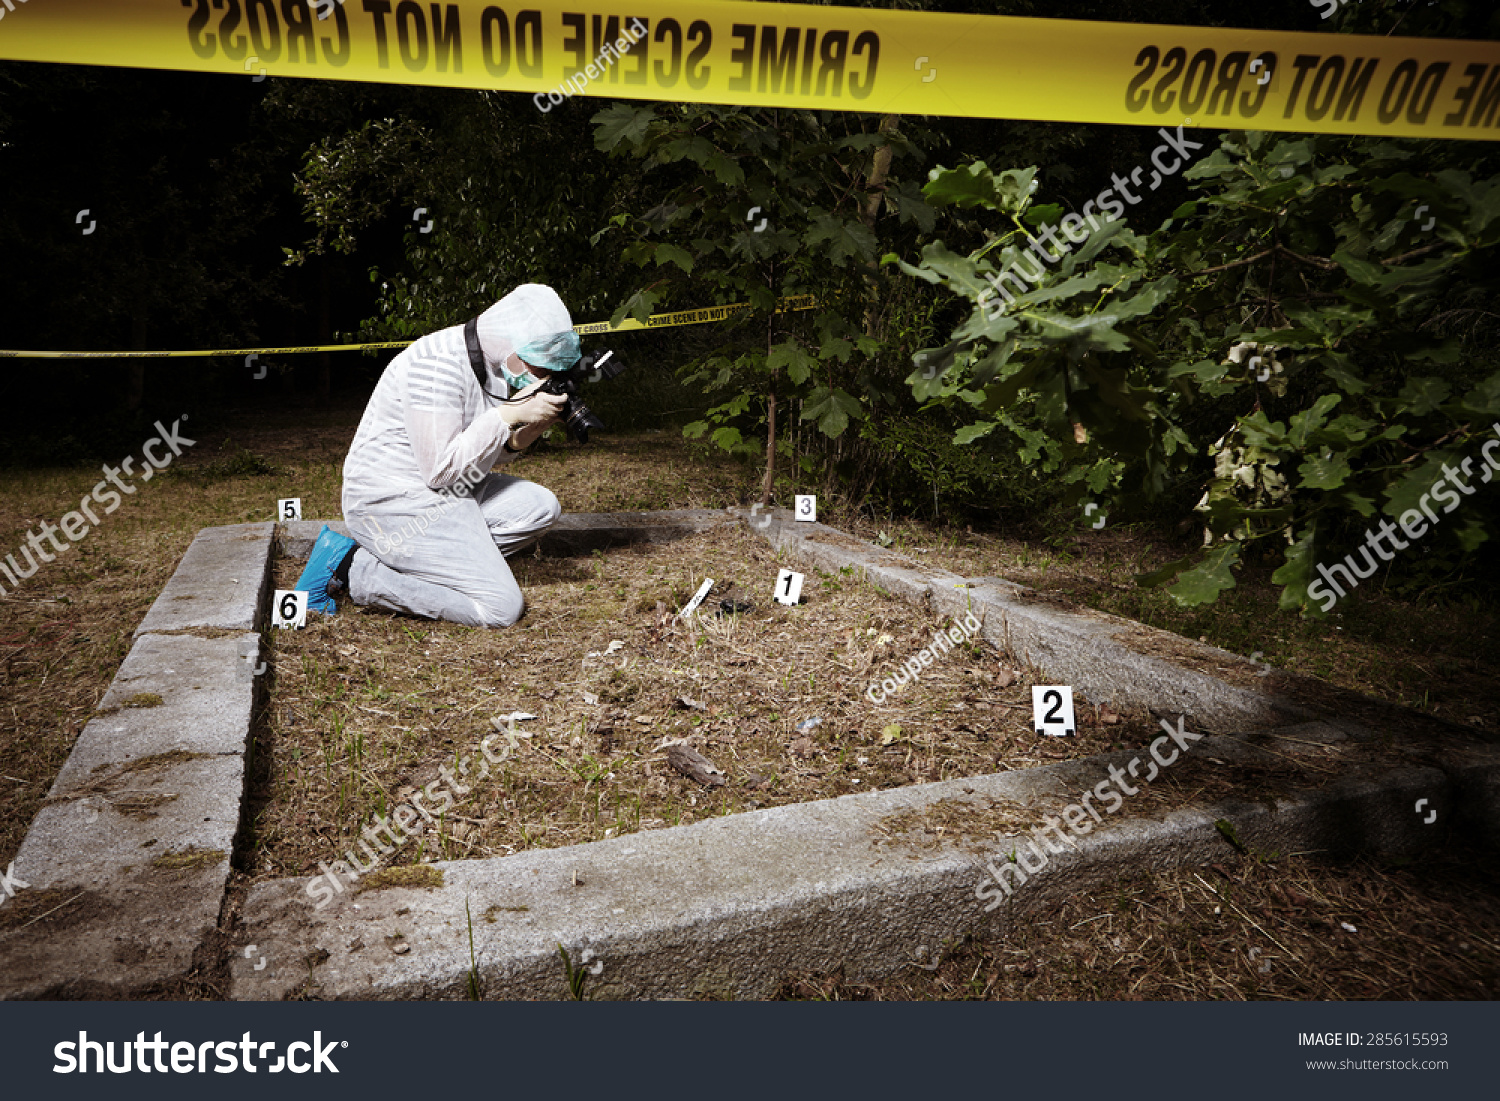 the importance of crime scene photography Photographer examiners, often called crime scene photographers, create a permanent visual record of a crime scene through photographs their work is essential to criminal investigation, because detectives and jurors can use the pictures to understand what happened, even months or years later when .